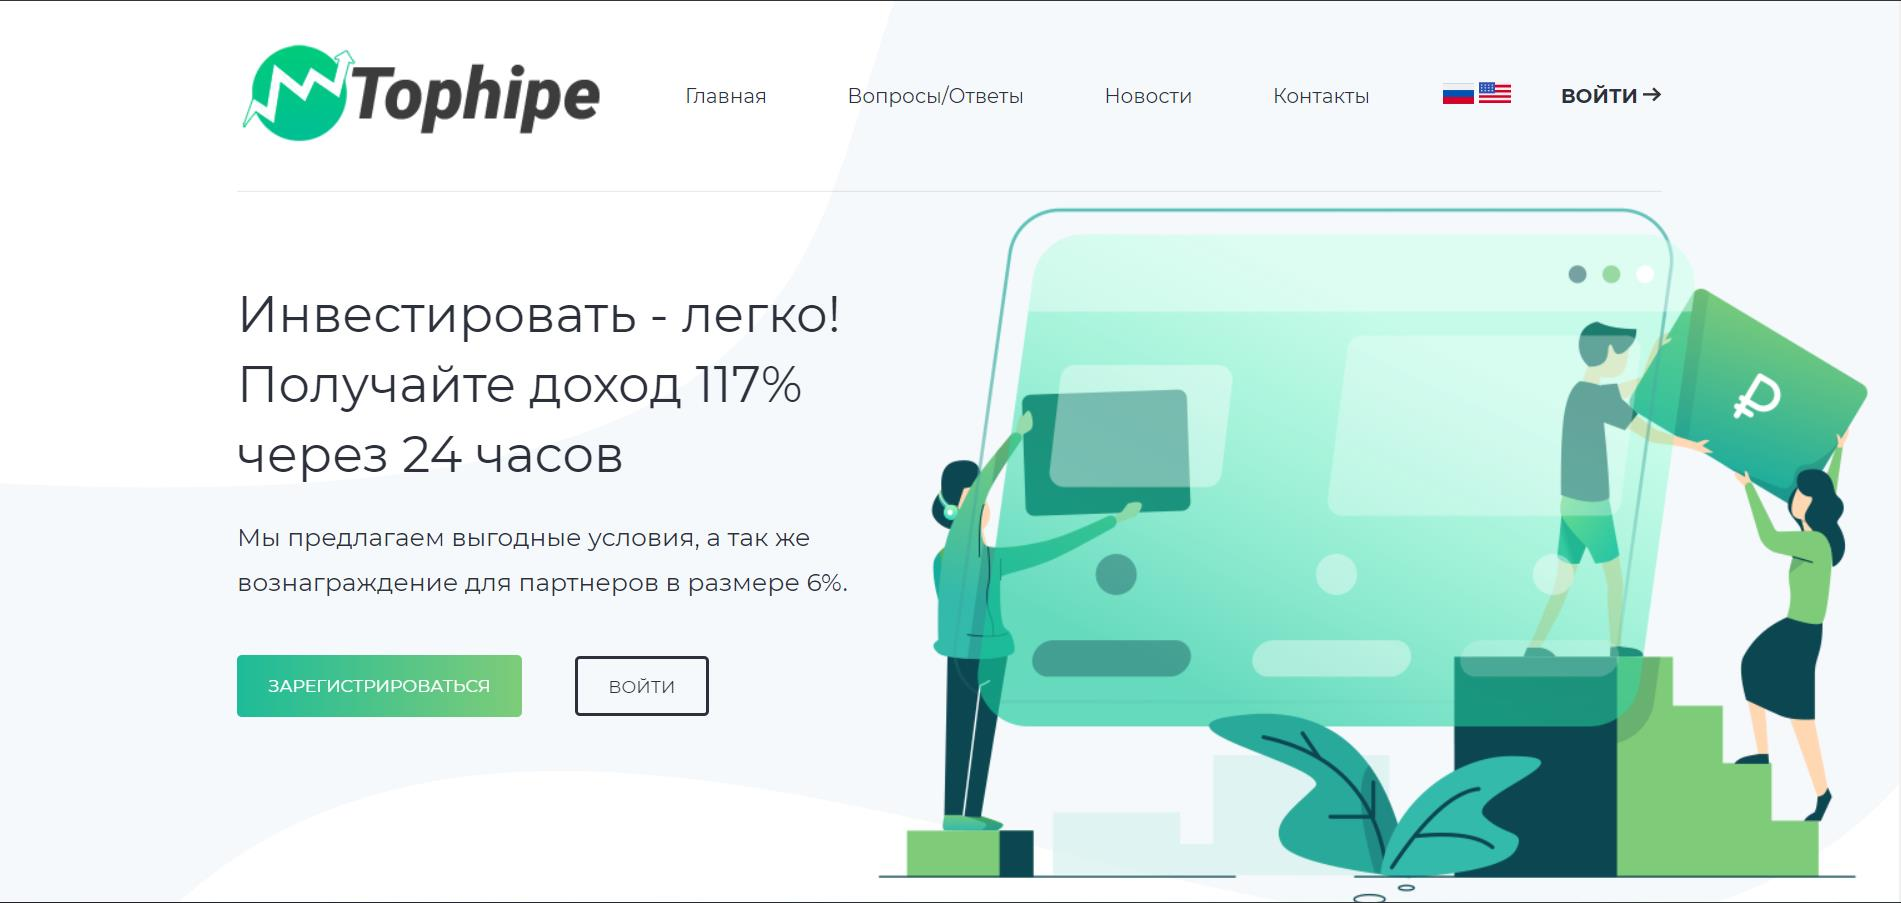 HYIP-CHECK.RU - Мониторинг HYIP Проектов. РЕФБЕК 50% - Страница 4 ScreenShot_20191024224400